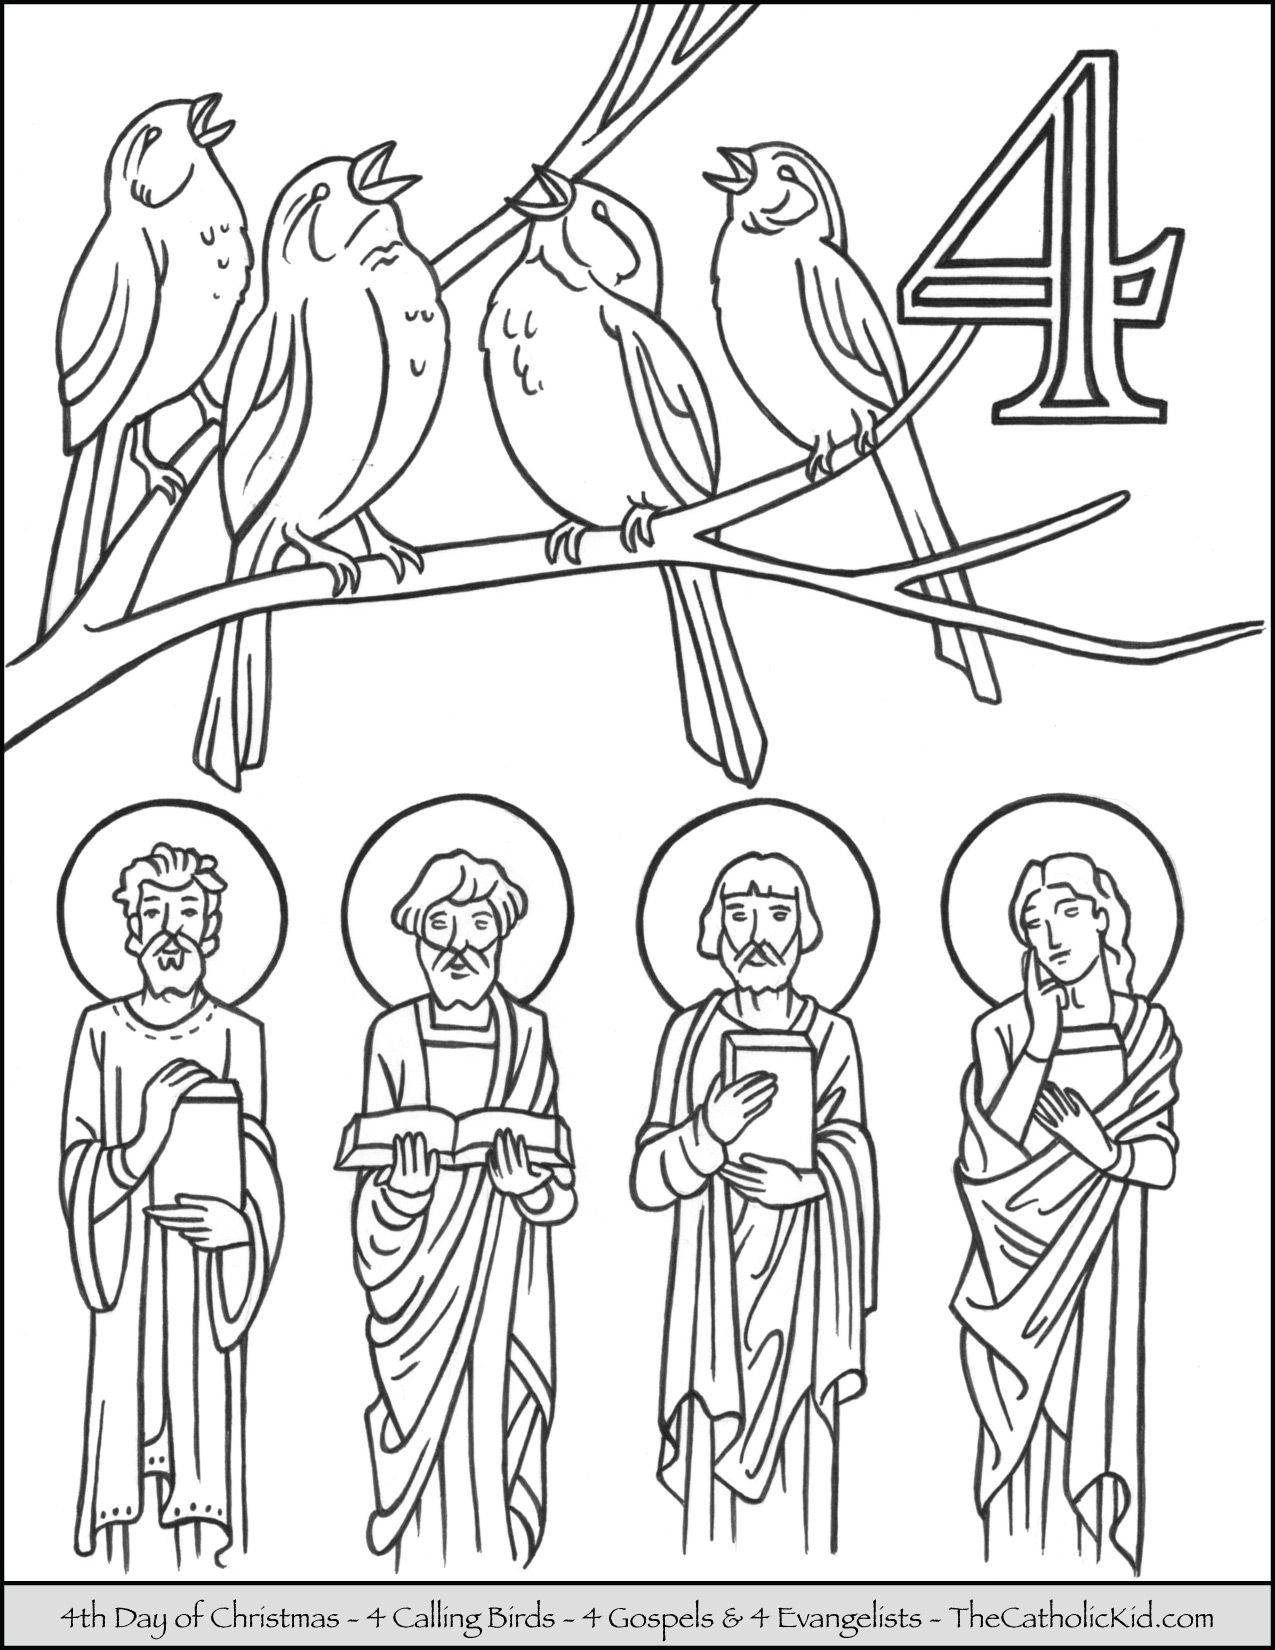 12 Days Of Christmas Coloring Pages Thecatholickid Com